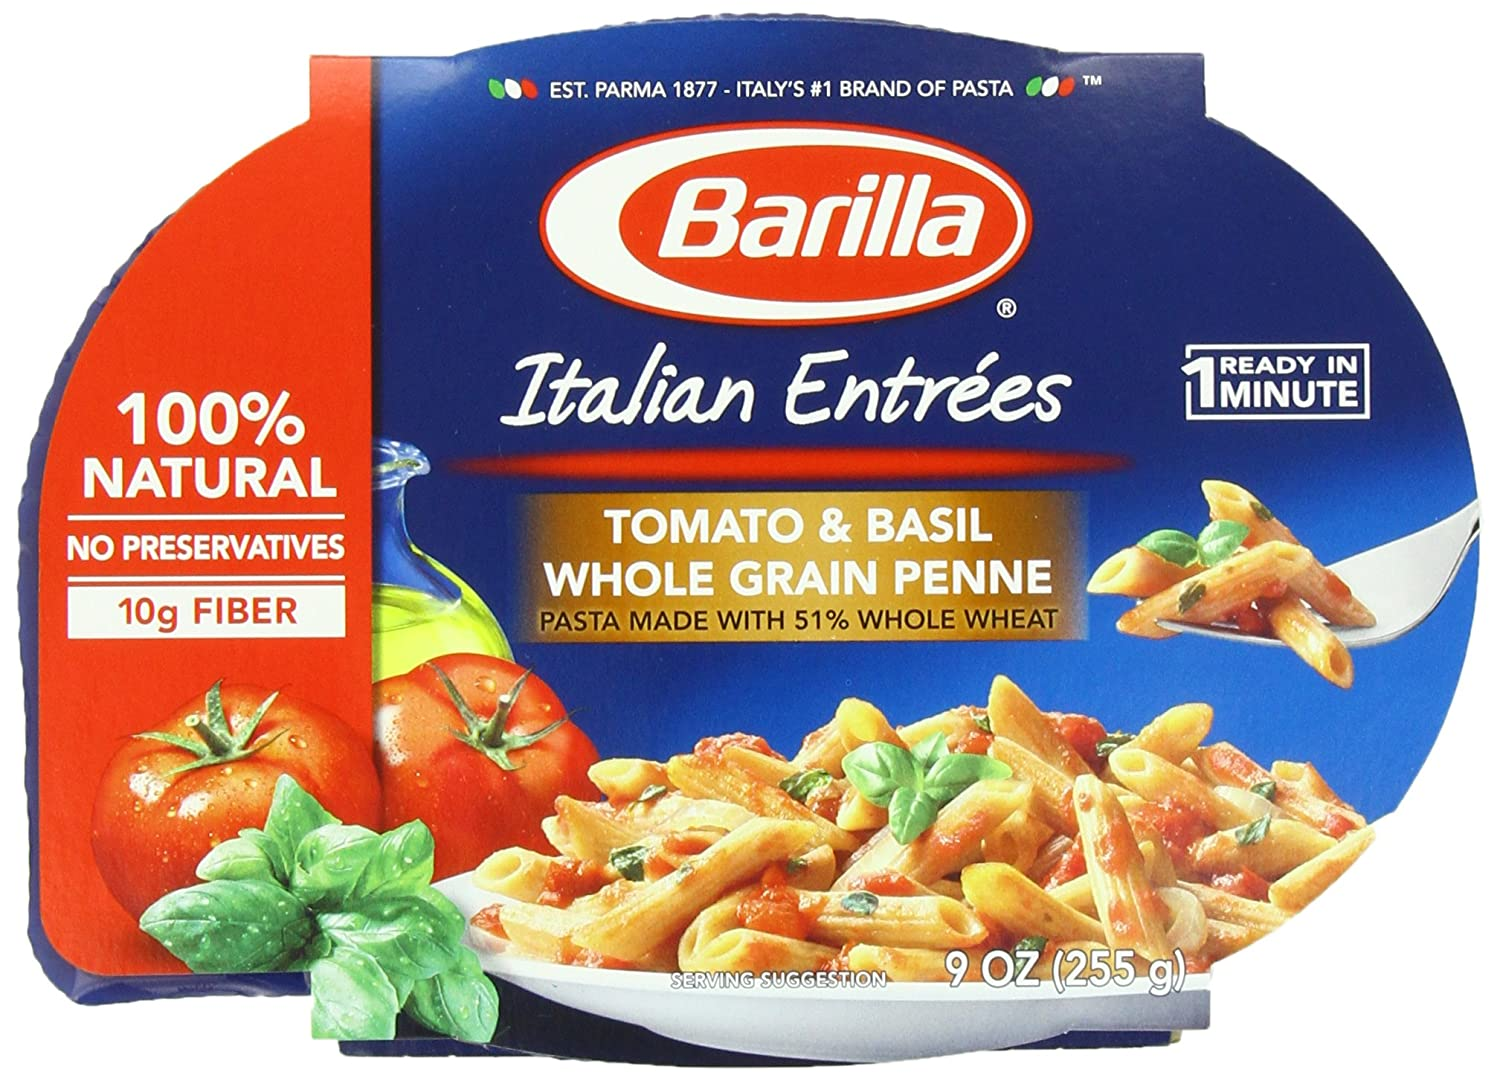 com barilla italian entrees meat sauce gemelli ounce com barilla italian entrees meat sauce gemelli 9 ounce pack of 6 packaged pasta dinner kits grocery gourmet food